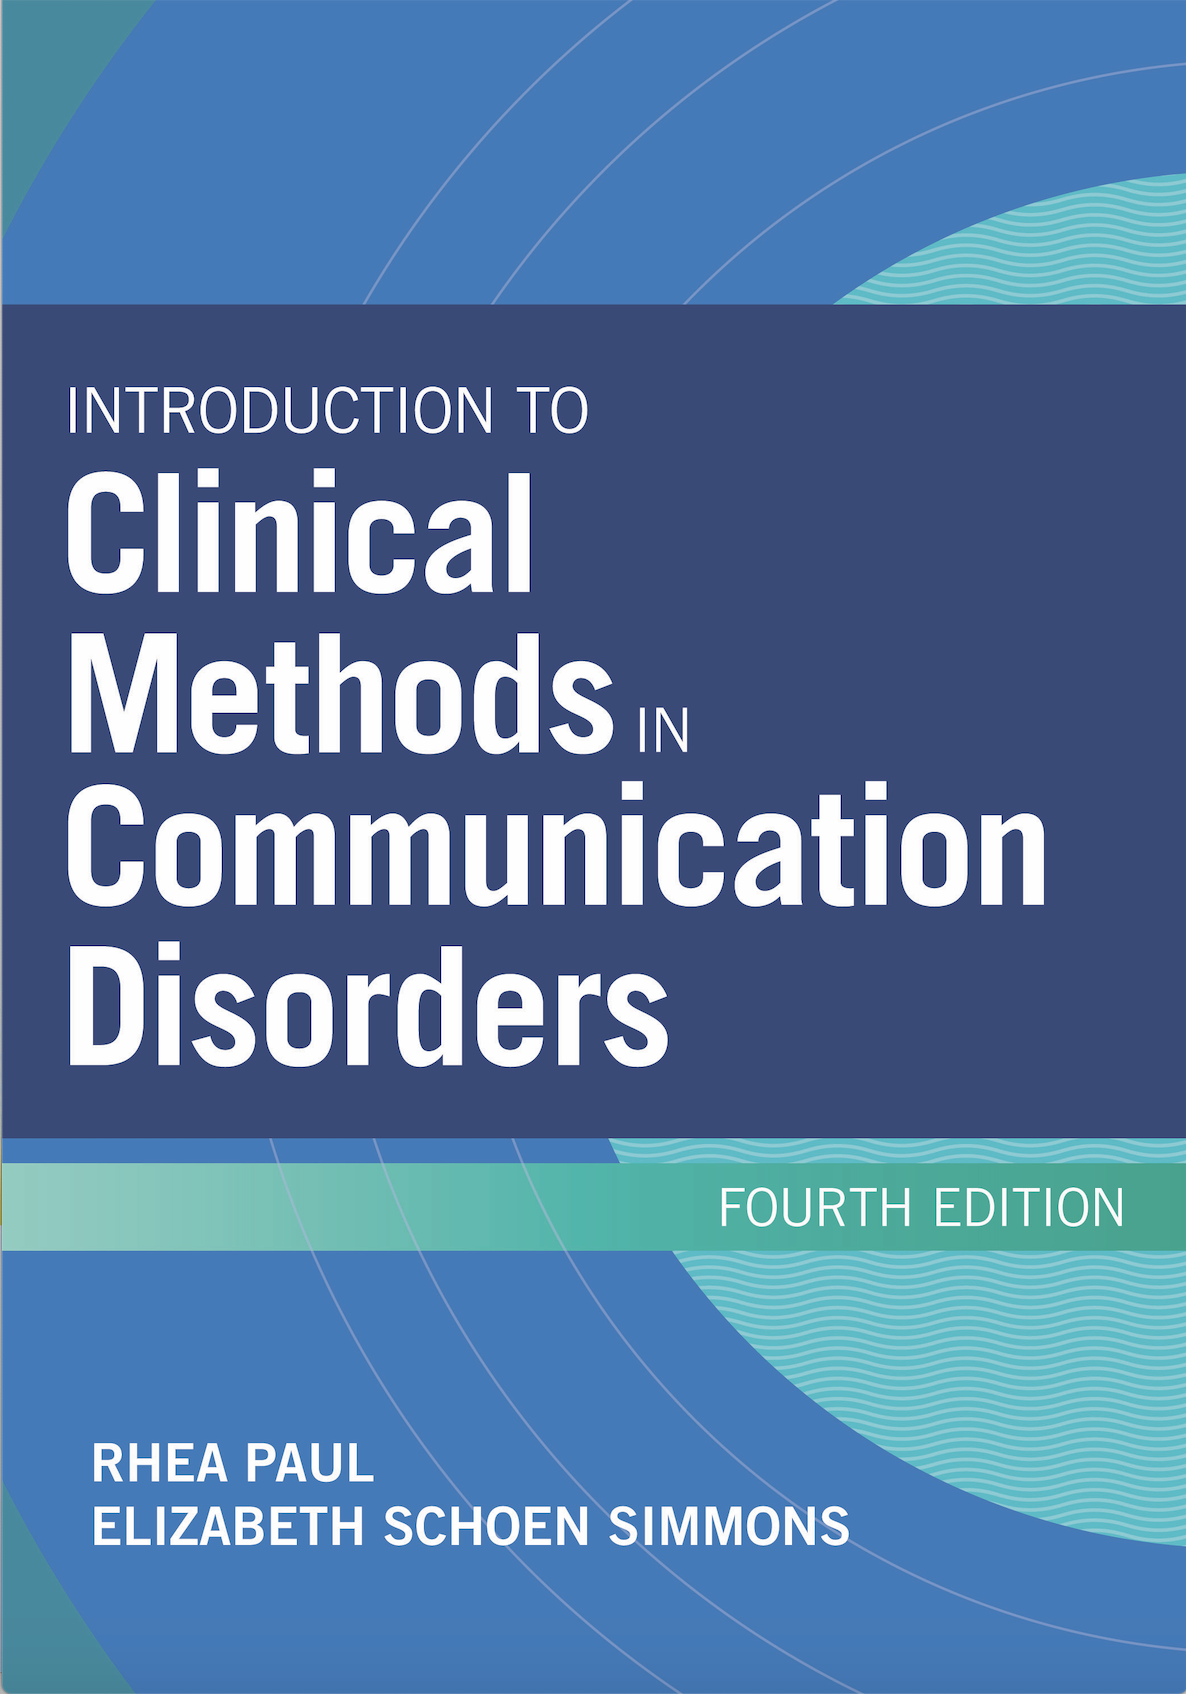 Introduction to Clinical Methods in Communication Disorders, 4th Edition